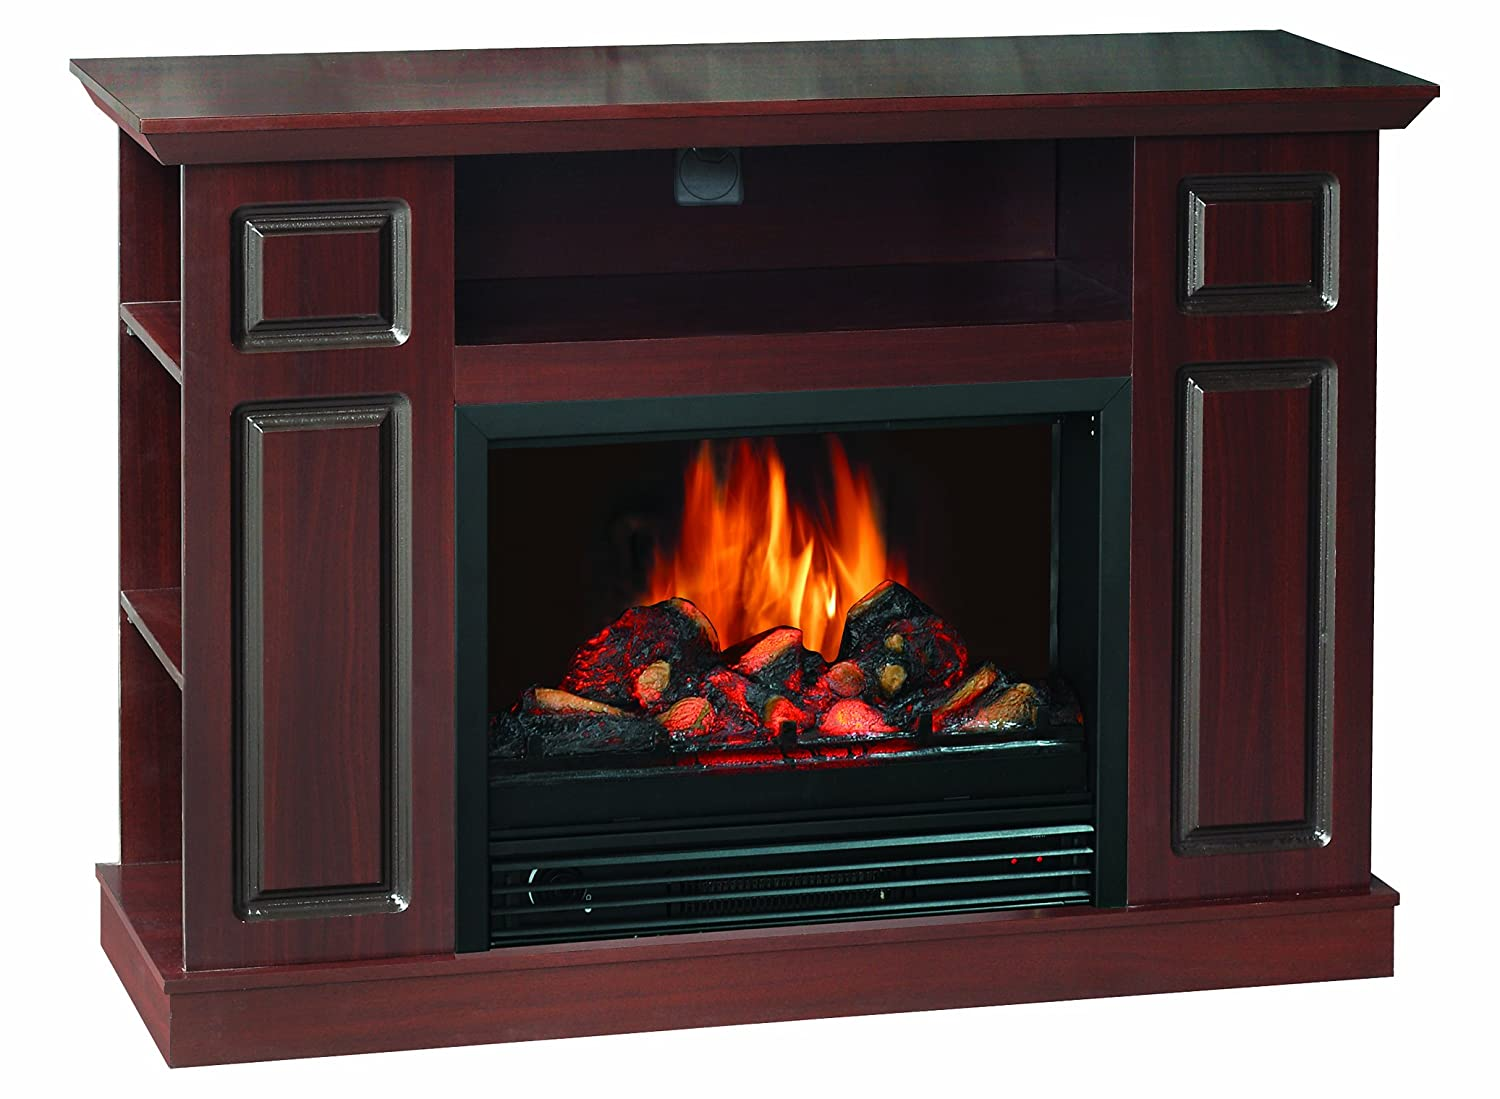 quality craft sylvania som220 46fdw electric fireplace heater with